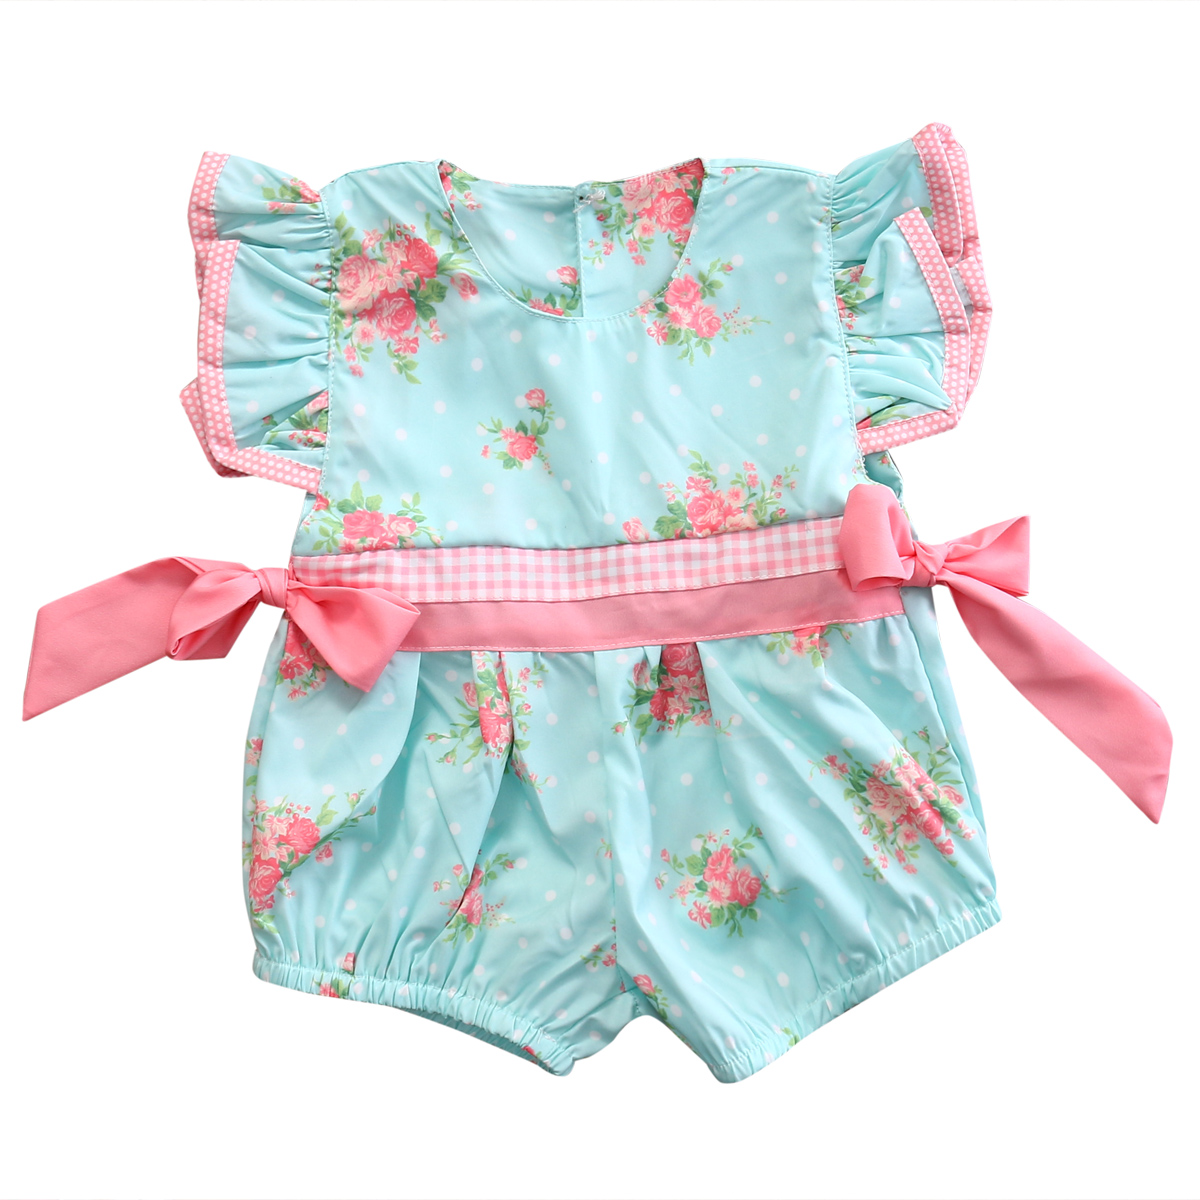 2017 Newborn Baby Girl Clothes Bowknot Ruffle Floral Romper Jumpsuit Outfits Sunsuit Summer Girls Clothes Cotton Baby Onesie newborn infant baby clothes girls floral lace off shoulder ruffle romper jumpsuit outfit sunsuit summer one piece baby onesie